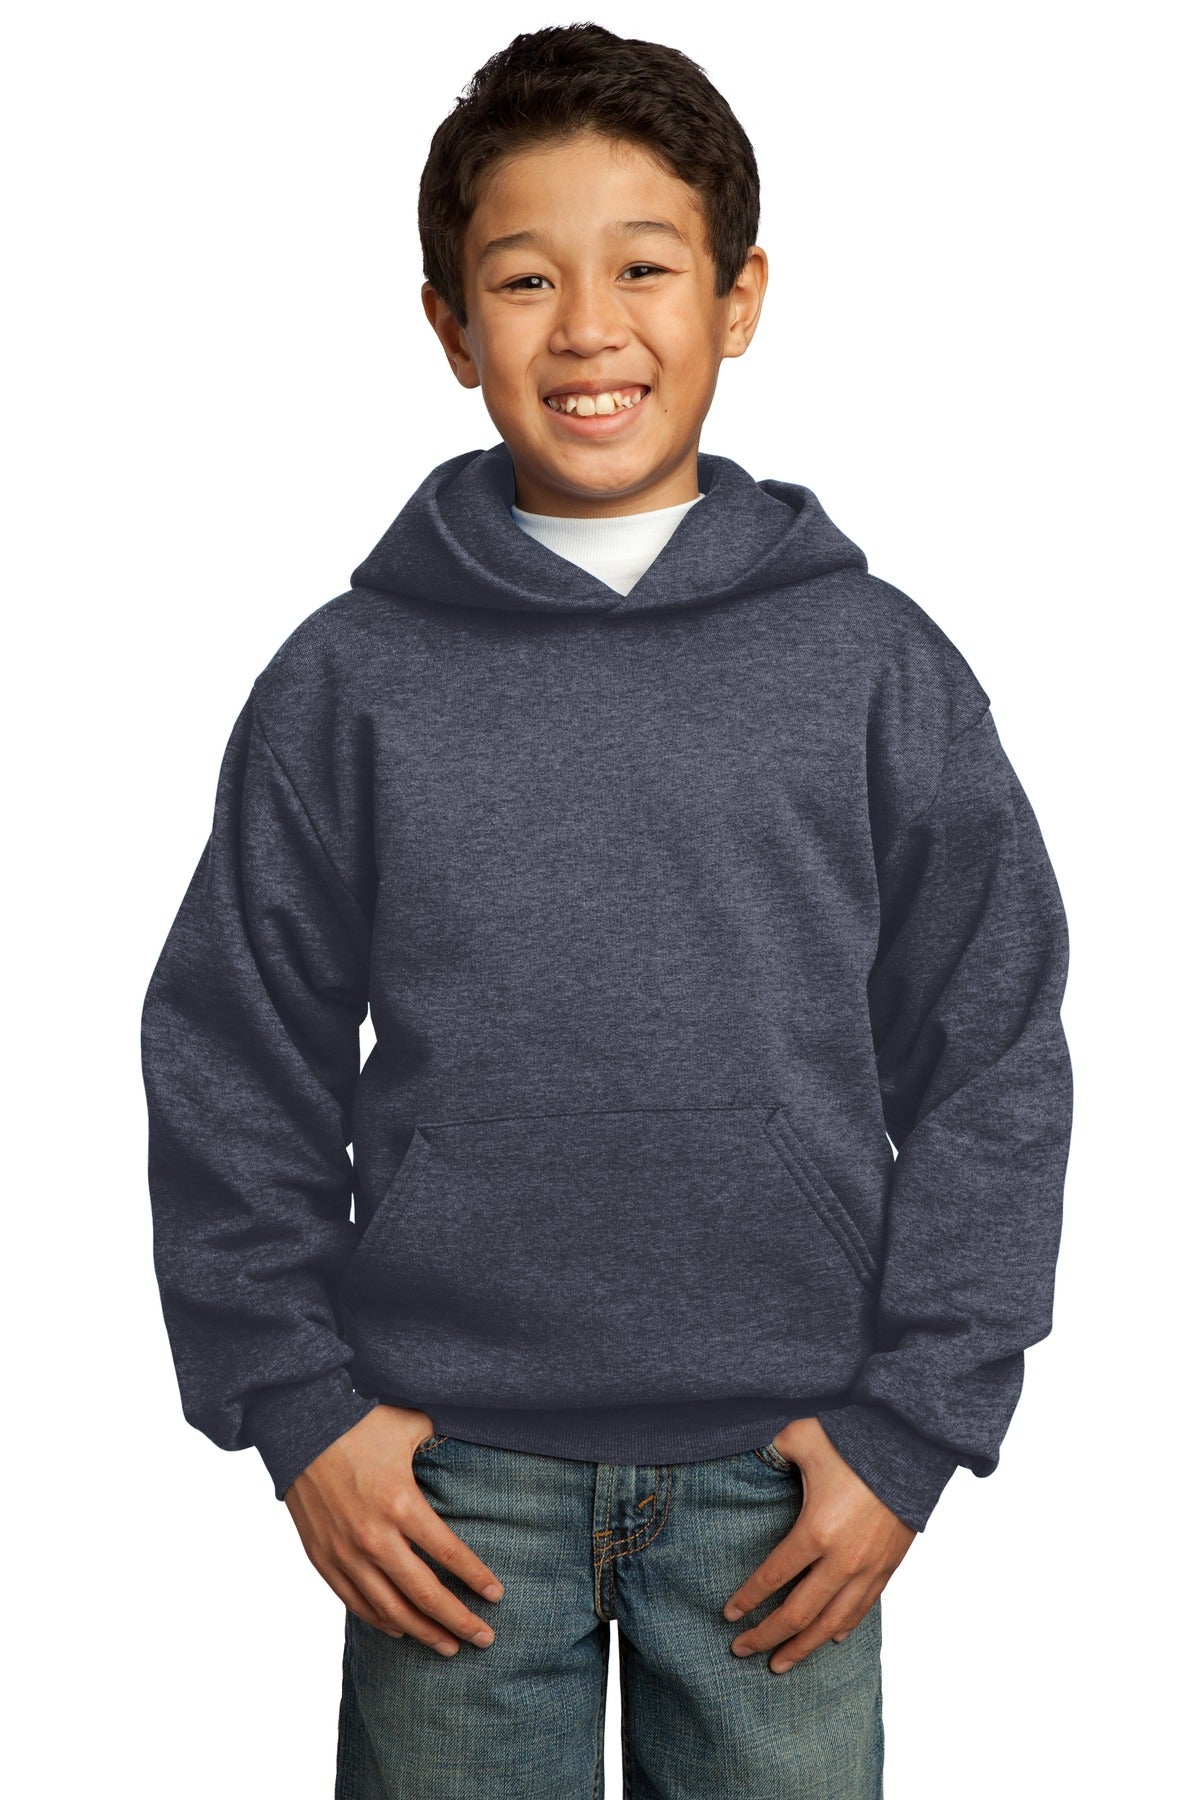 Heather Navy Port & Company - Youth Core Fleece Pullover Hooded Sweatshirt.